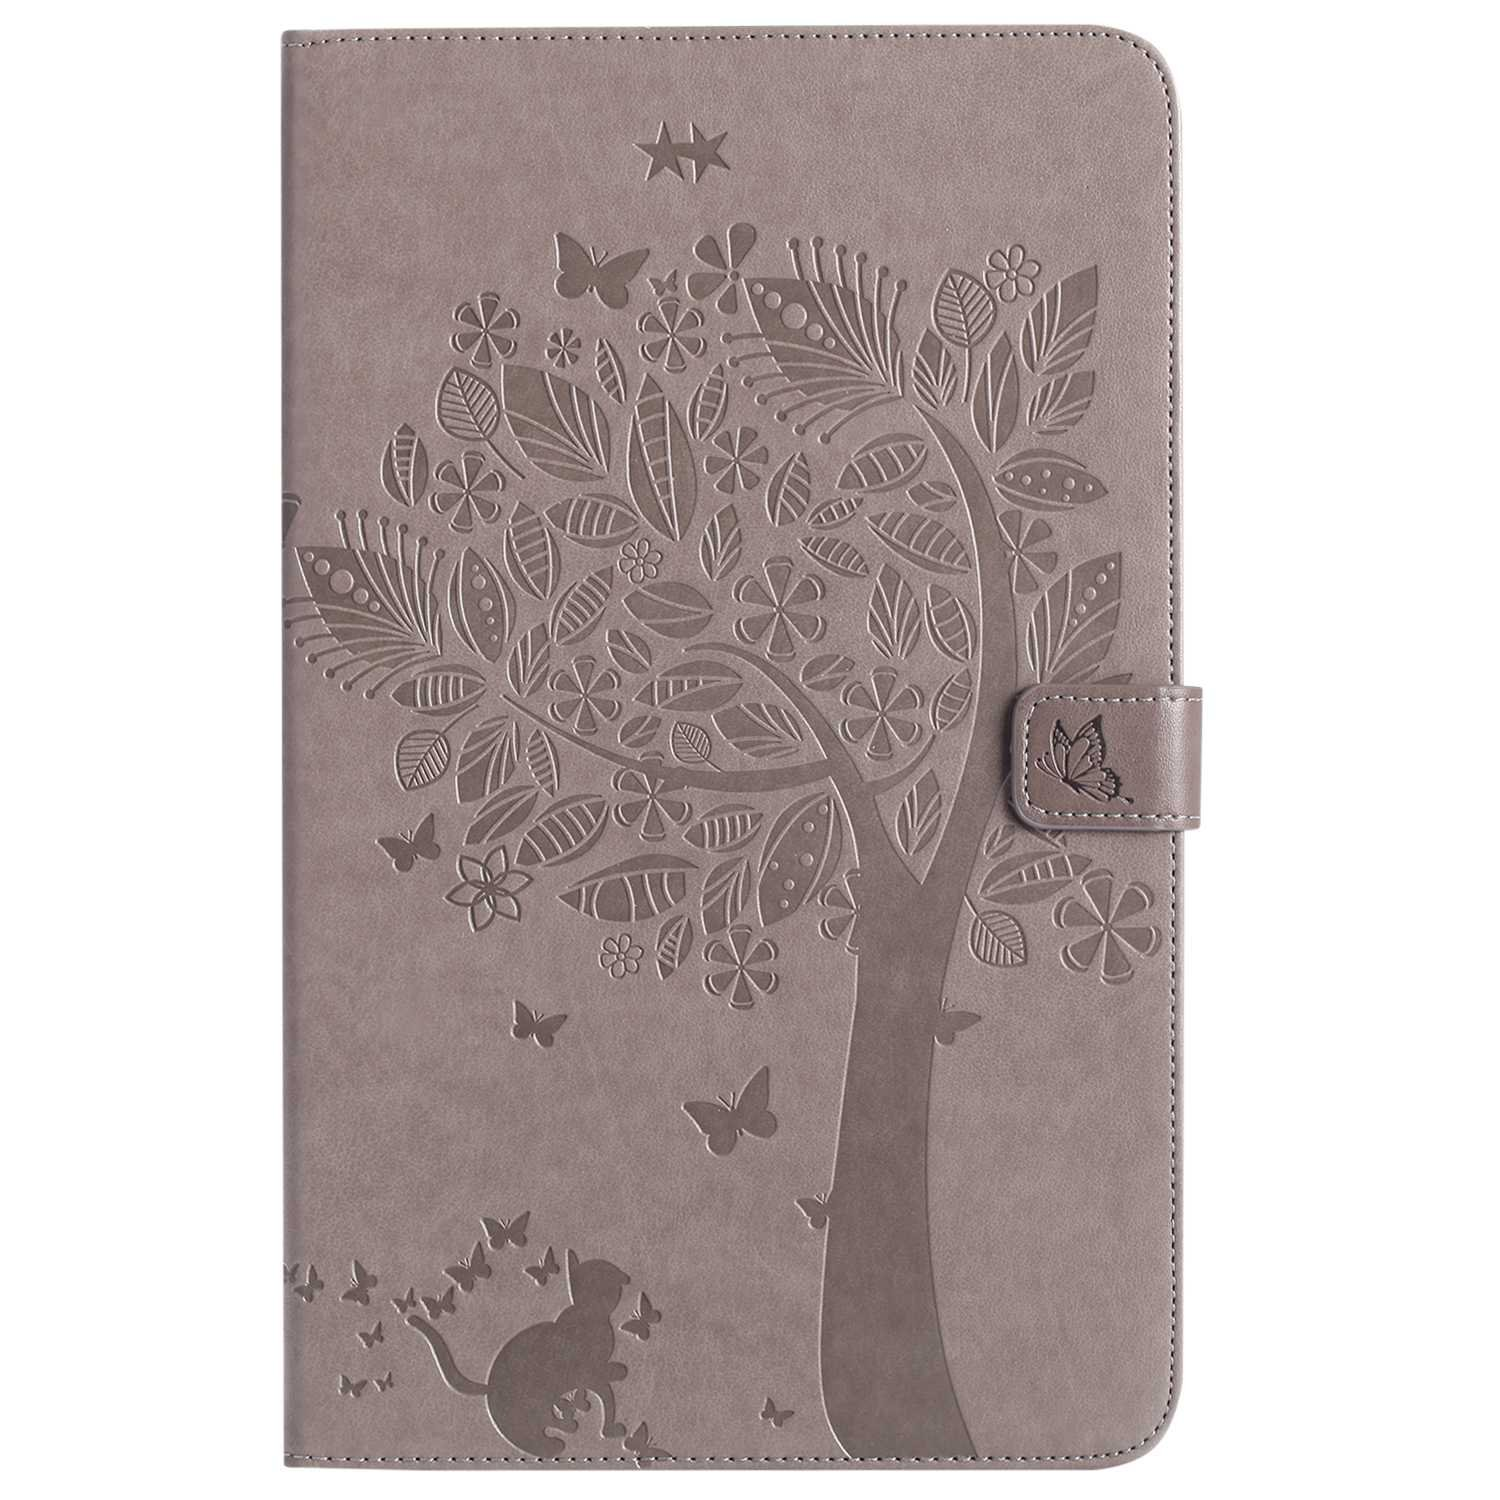 Bear Village Galaxy Tab a 10.1 Inch Case, Leather Magnetic Case, Fullbody Protective Cover with Stand Function for Samsung Galaxy Tab a 10.1 Inch, Gray by Bear Village